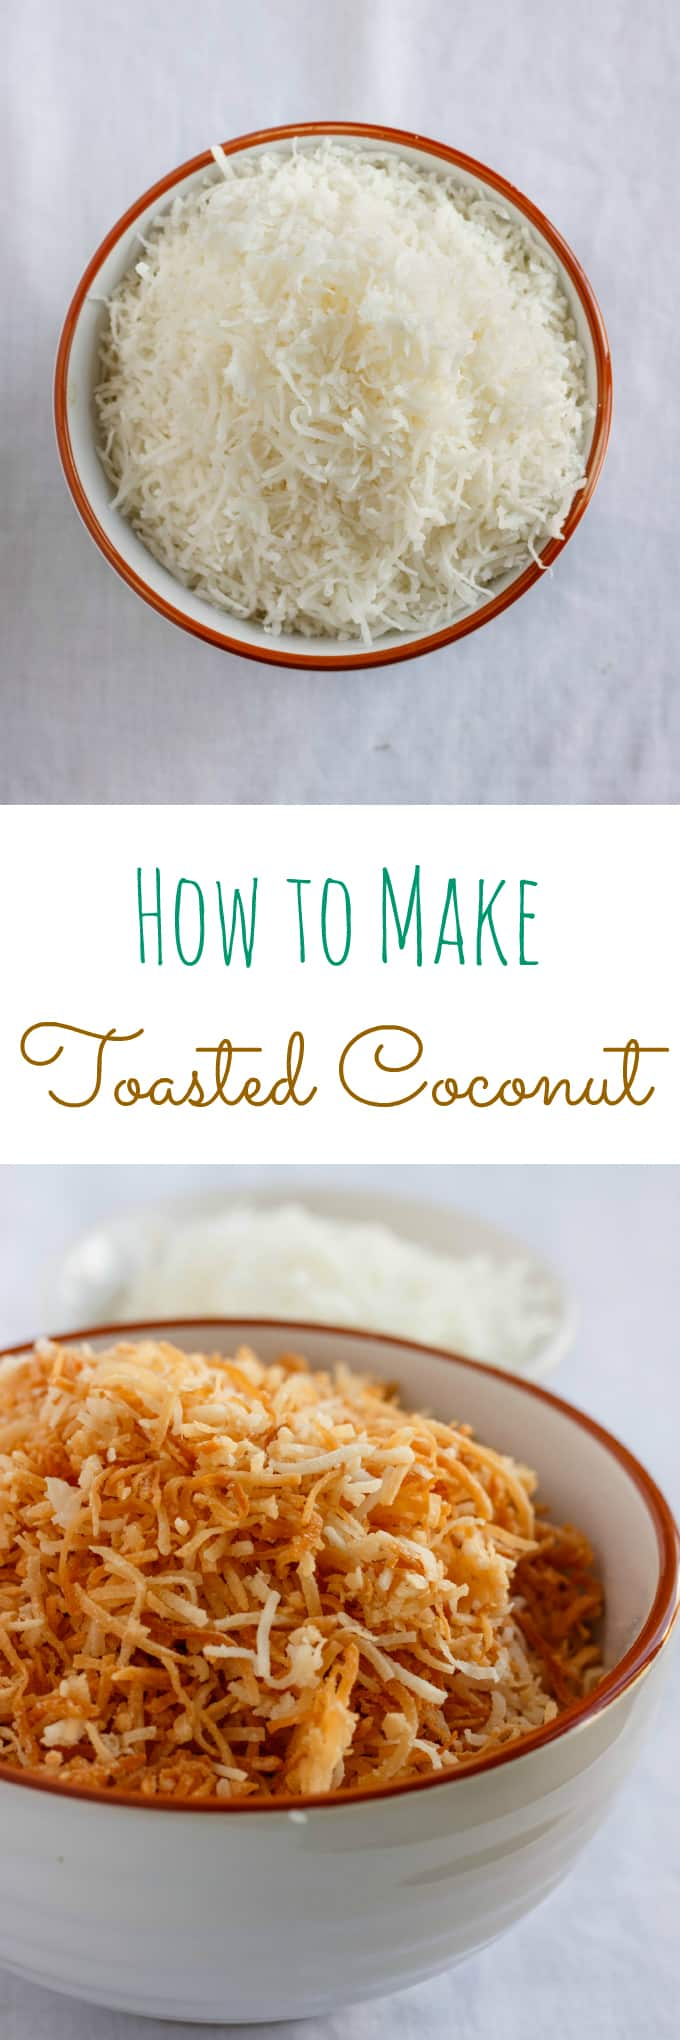 Tutorial How to Make Toasted Coconut #toastedcoconut